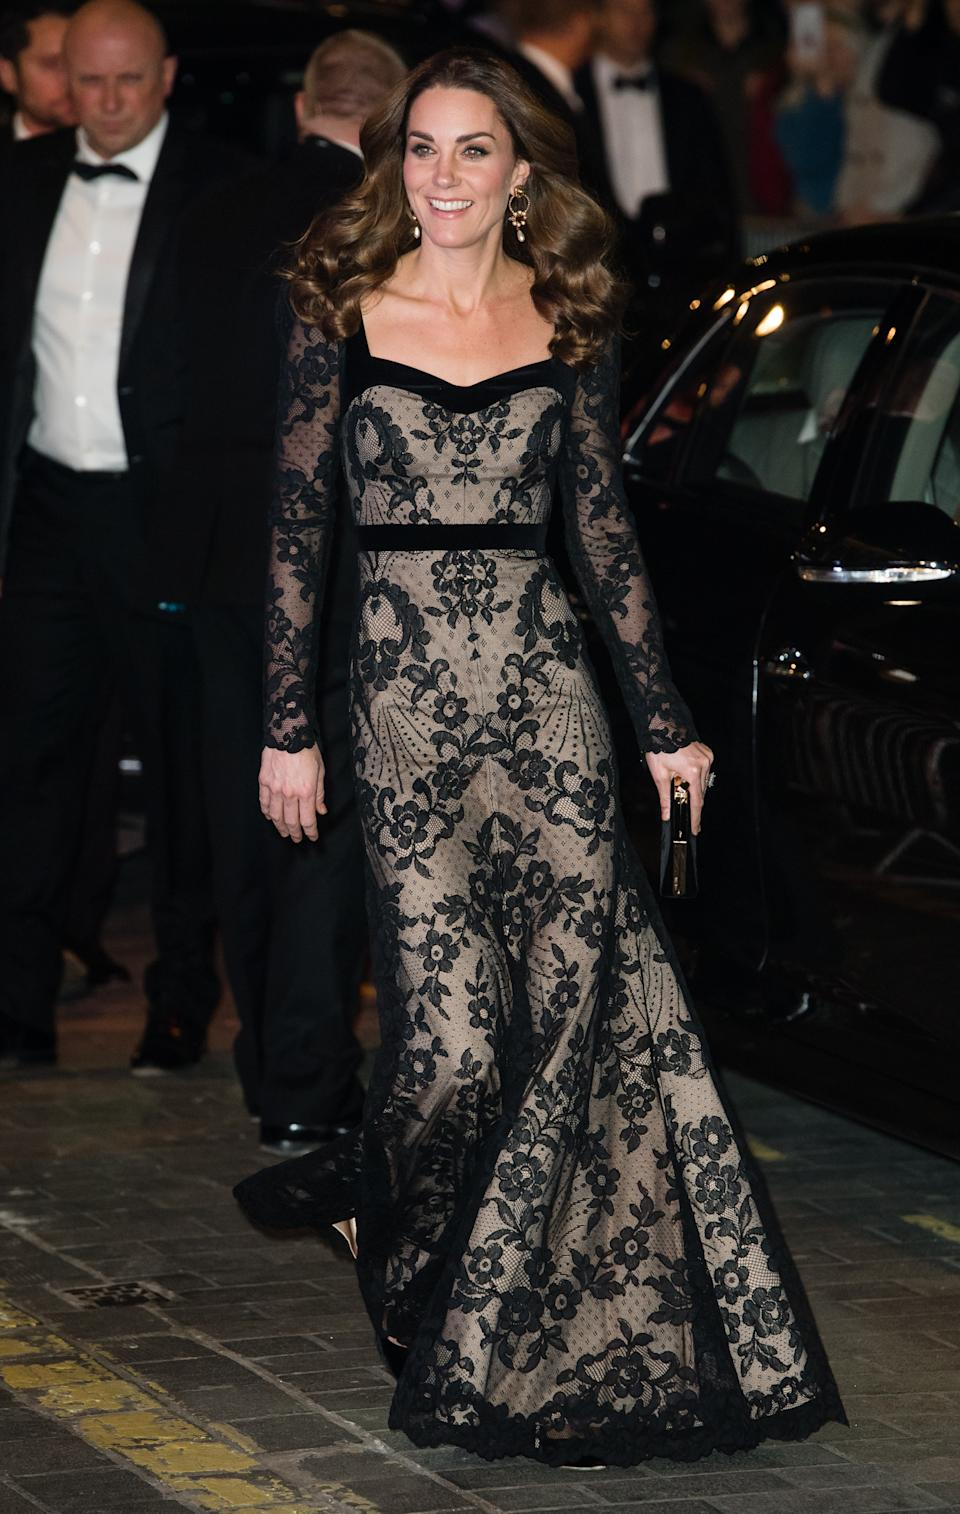 LONDON, ENGLAND - NOVEMBER 18: Catherine, Duchess of Cambridge attends the Royal Variety Performance at Palladium Theatre on November 18, 2019 in London, England. (Photo by Samir Hussein/WireImage)